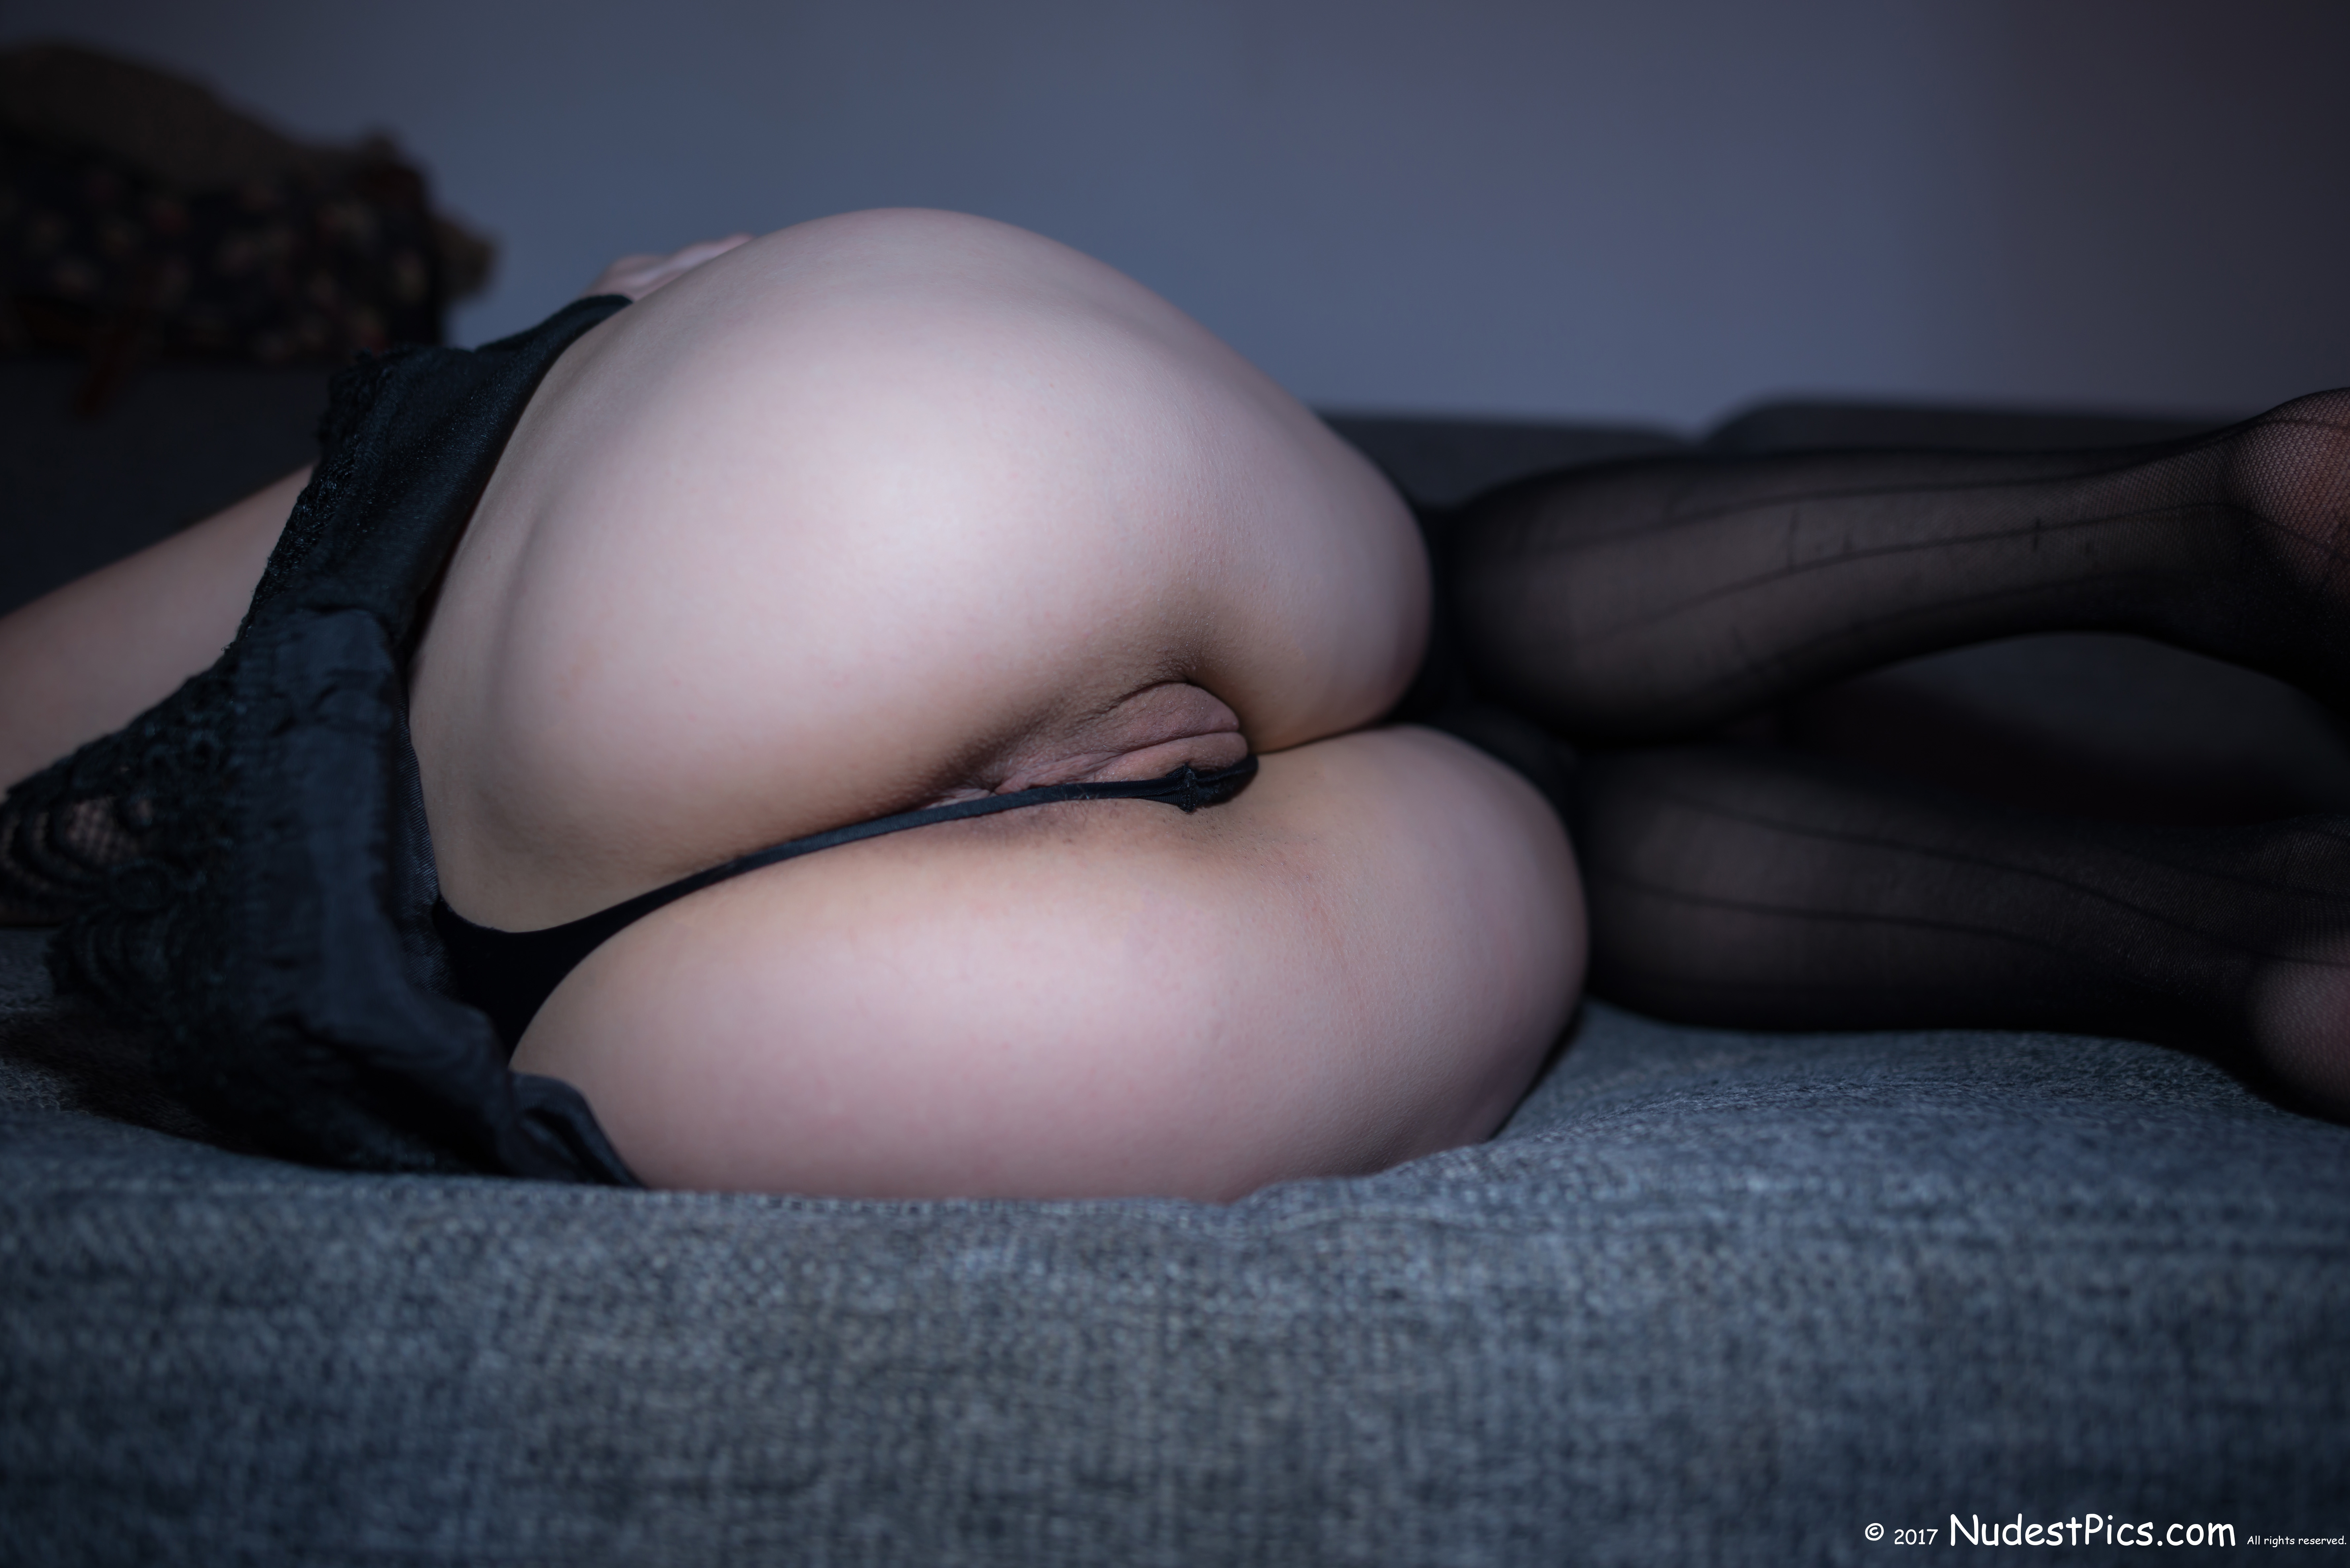 Her White Bottom Getting out of Darkness HD